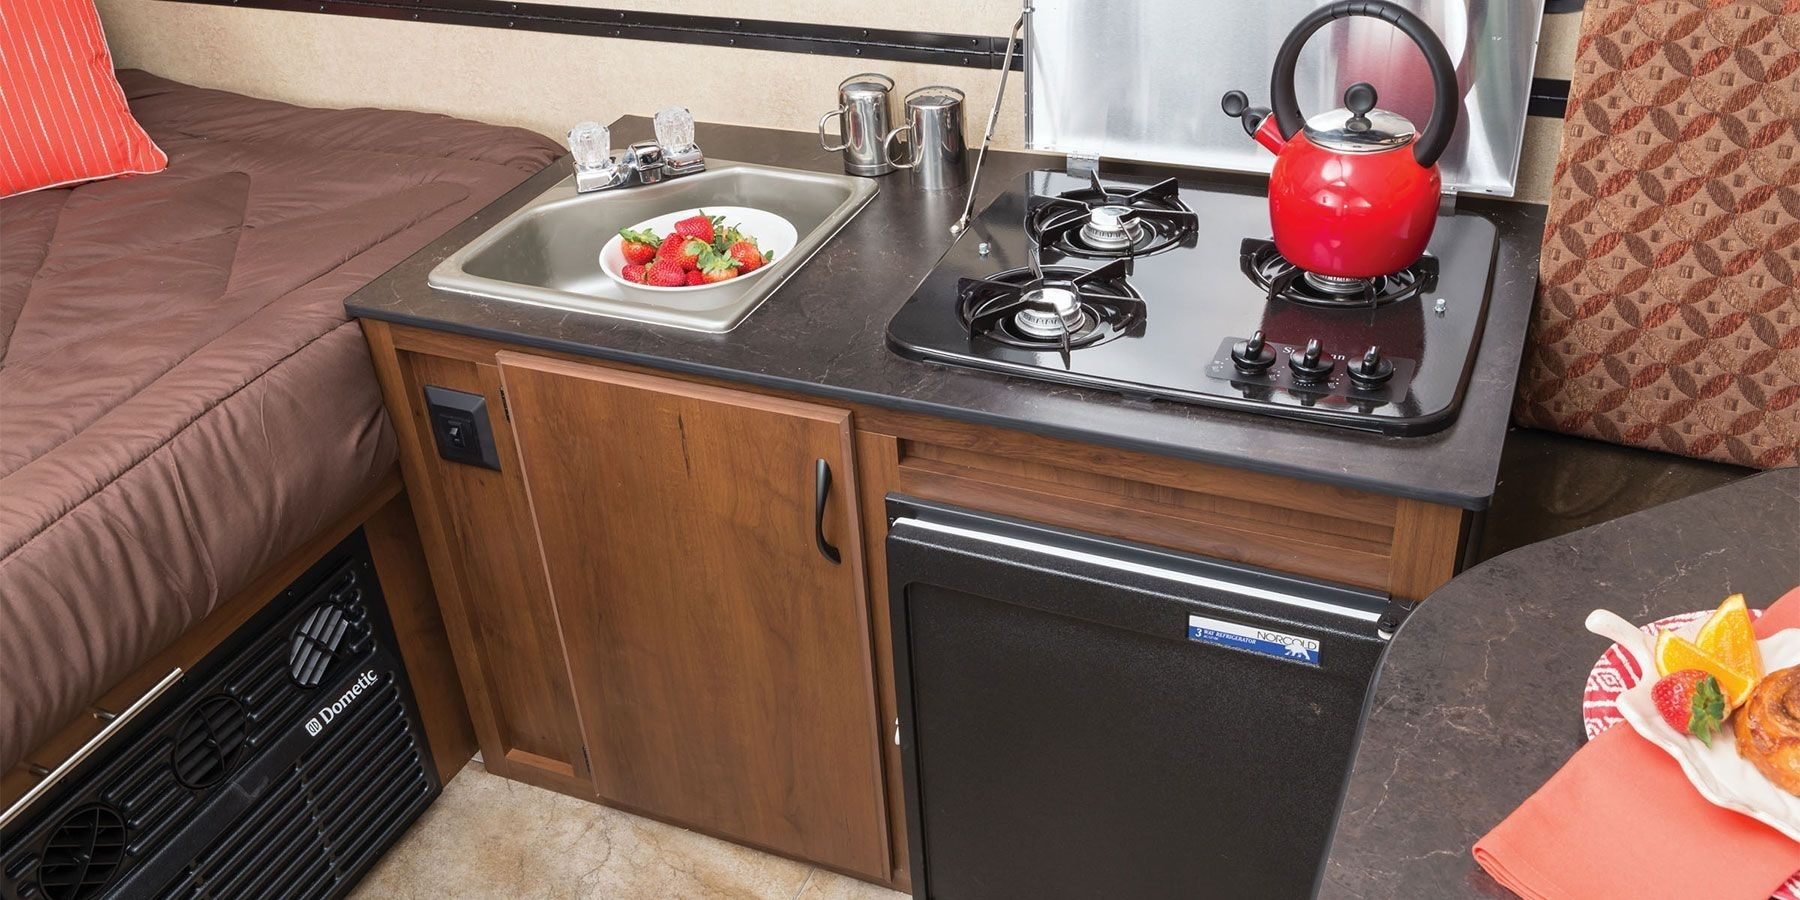 Kitchen Sinks For Camper Trailers